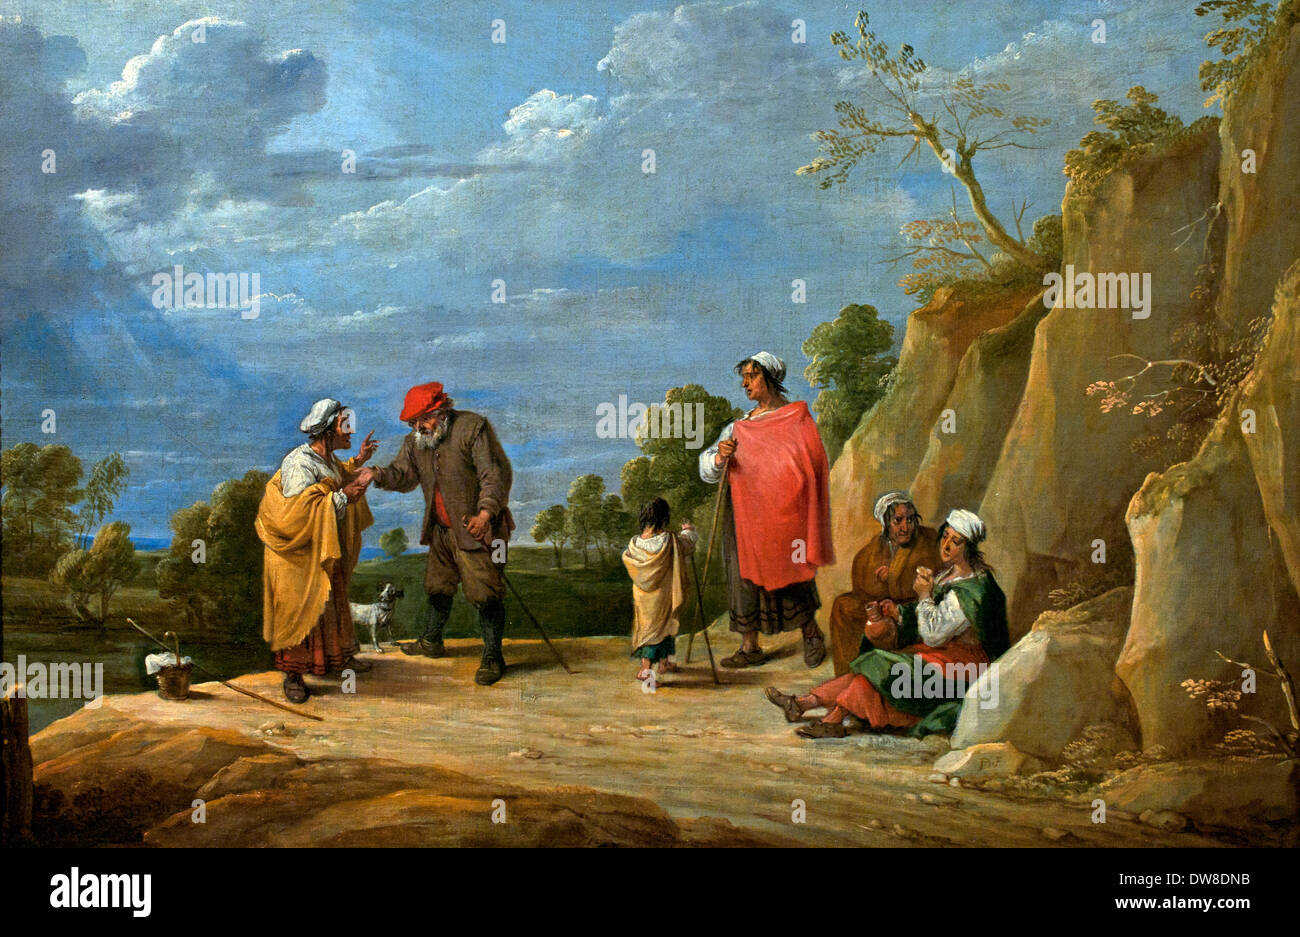 Four gypsy women true saying with a child, one a farmer David Teniers  the Younger 1610-1690 Flemish Belgian Belgium - Stock Image